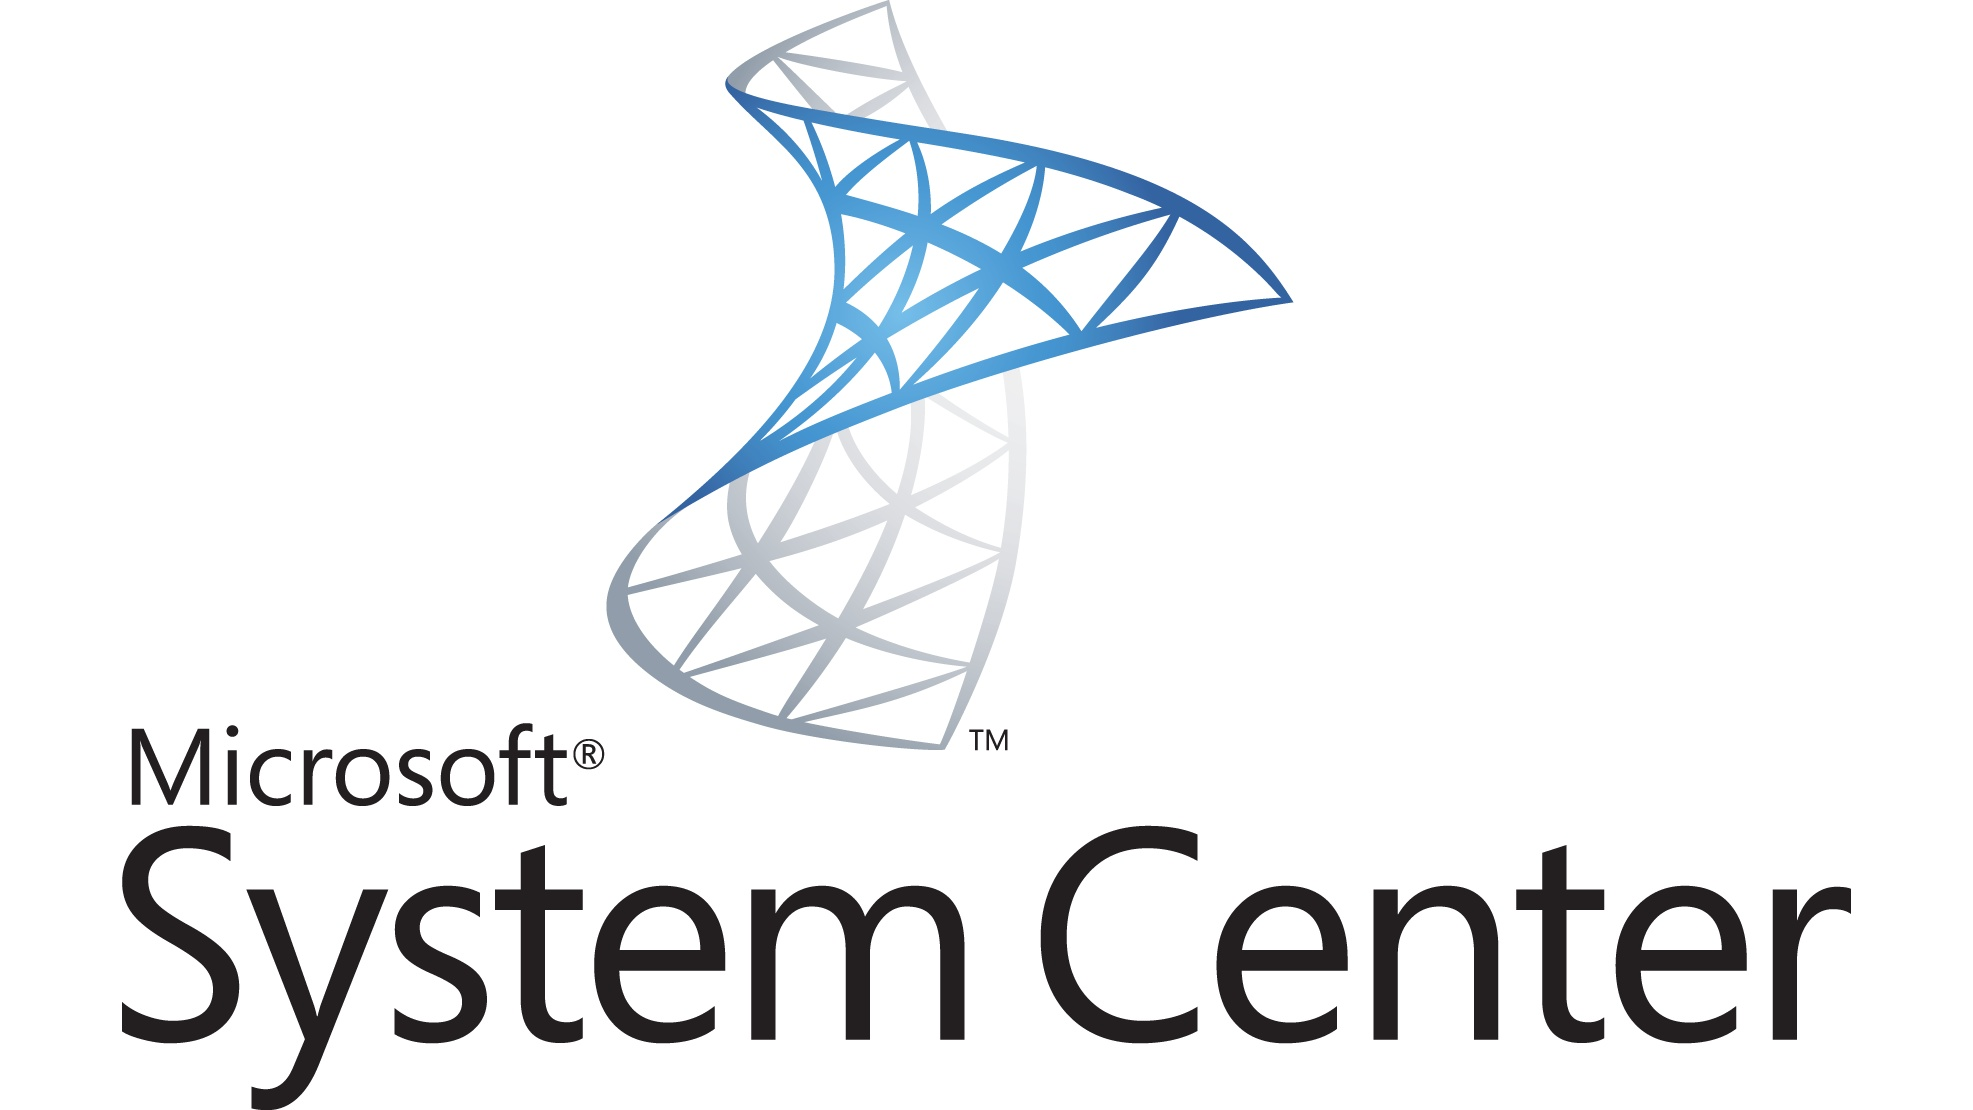 Sccm Software Update Part 1 Introduction To Sccm And Wsus